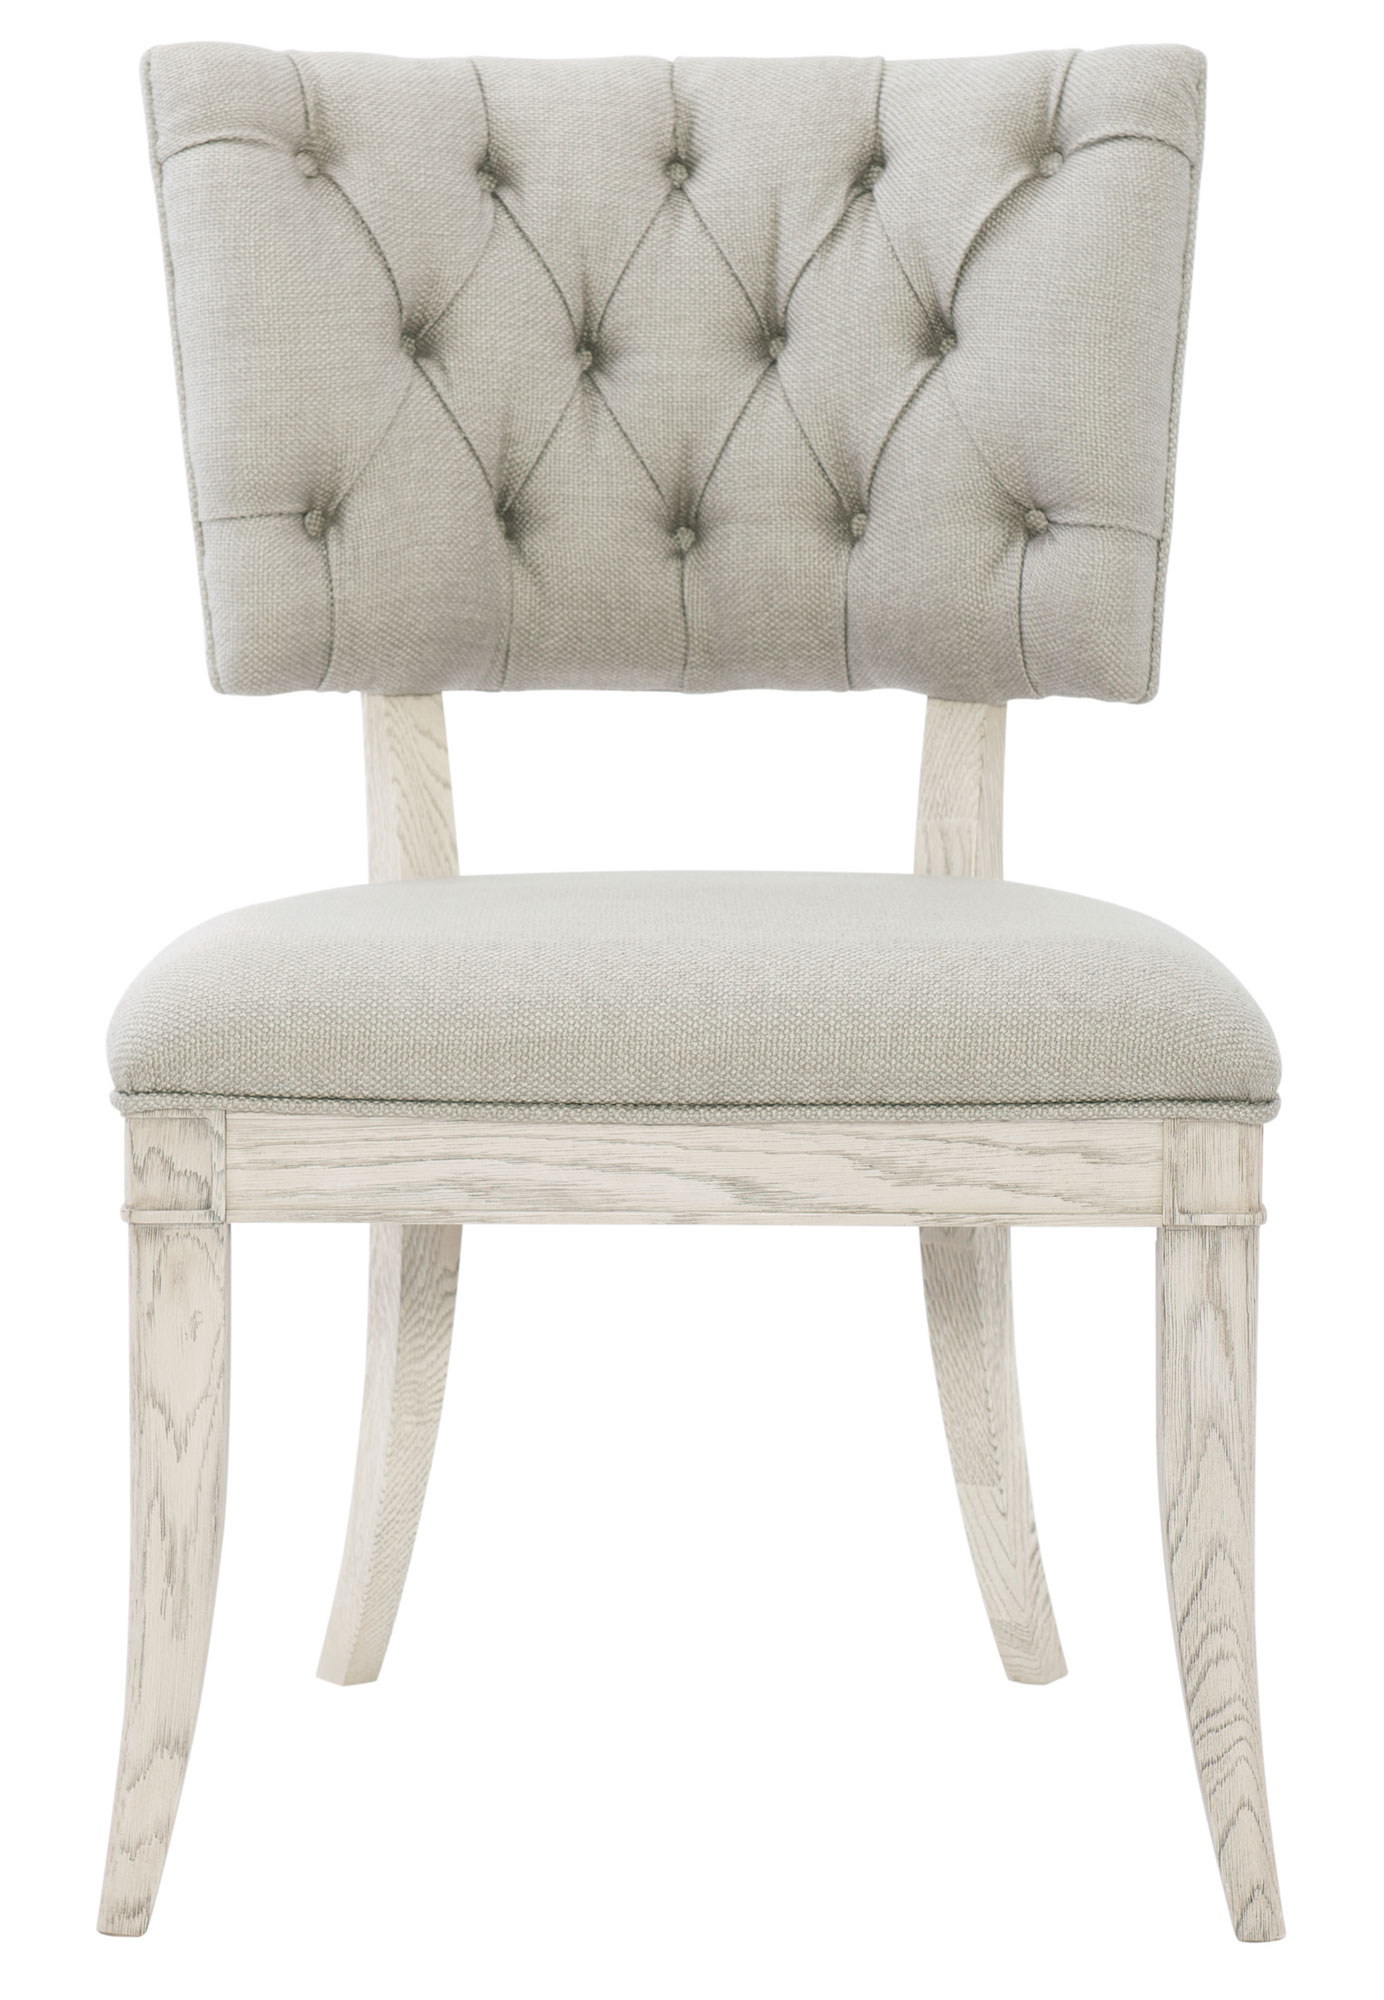 dining chairs canada upholstered cute for teenage bedrooms side chair | bernhardt